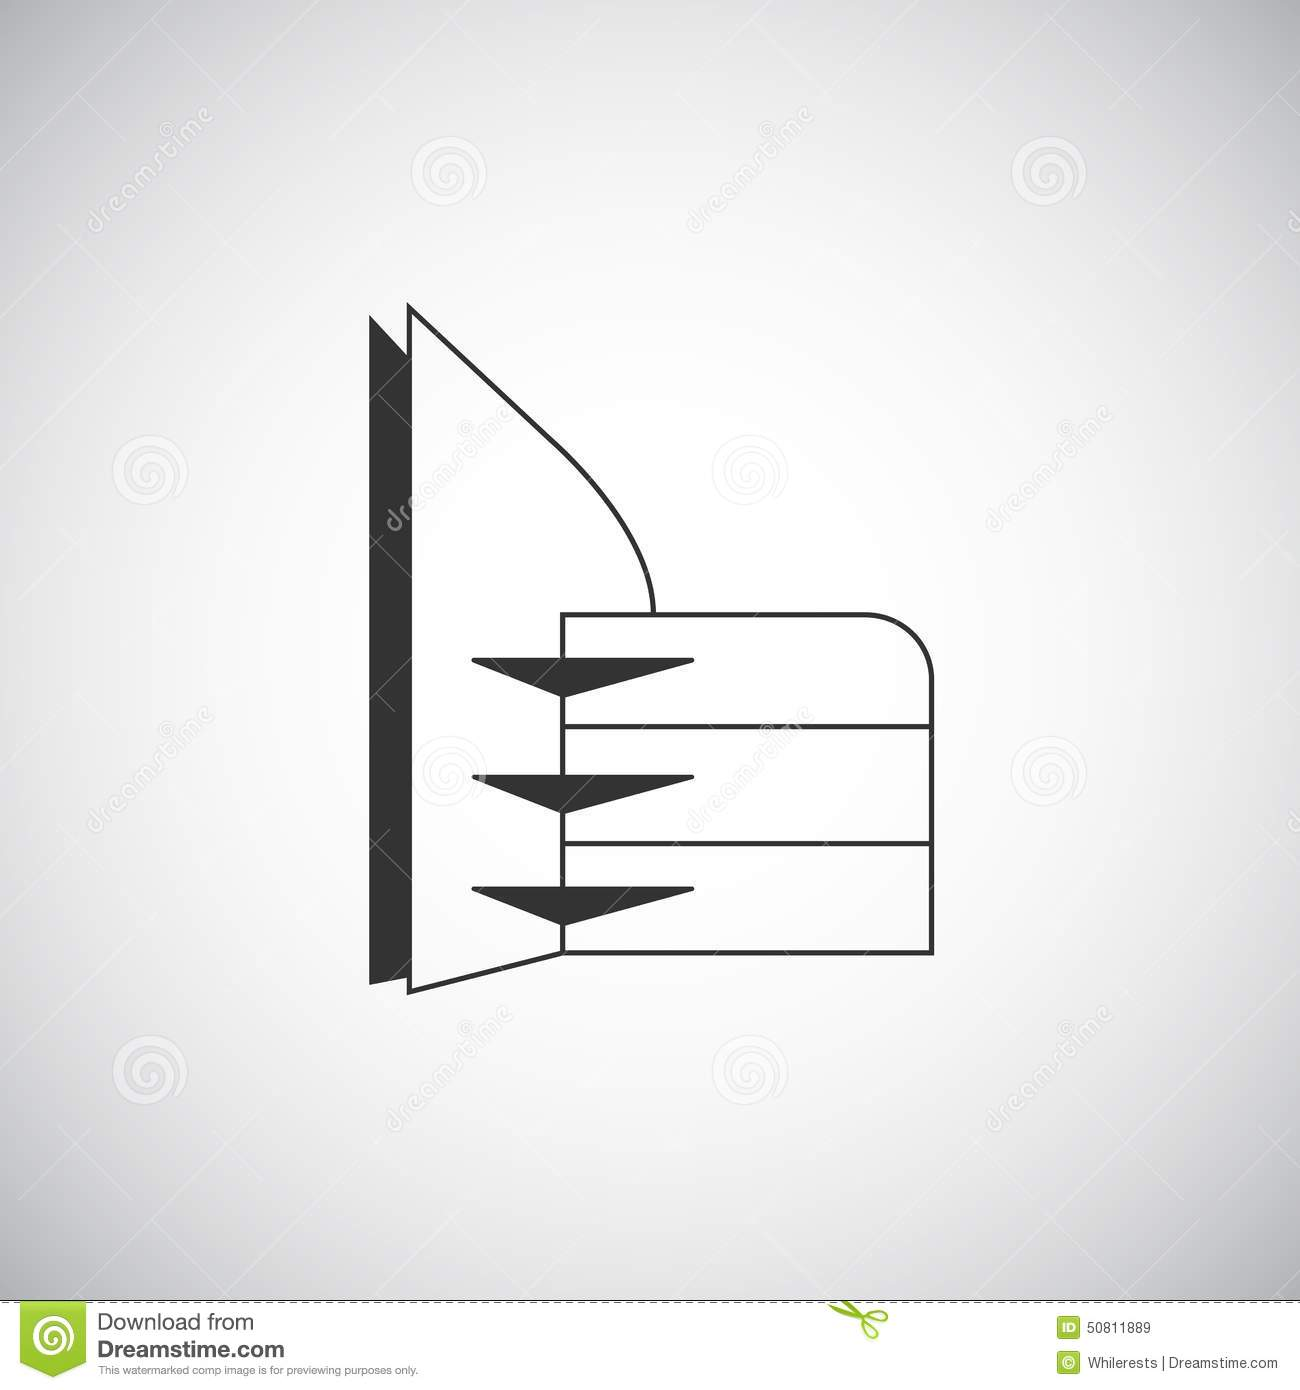 Abstract architecture building silhouette logo design for Architecture logo